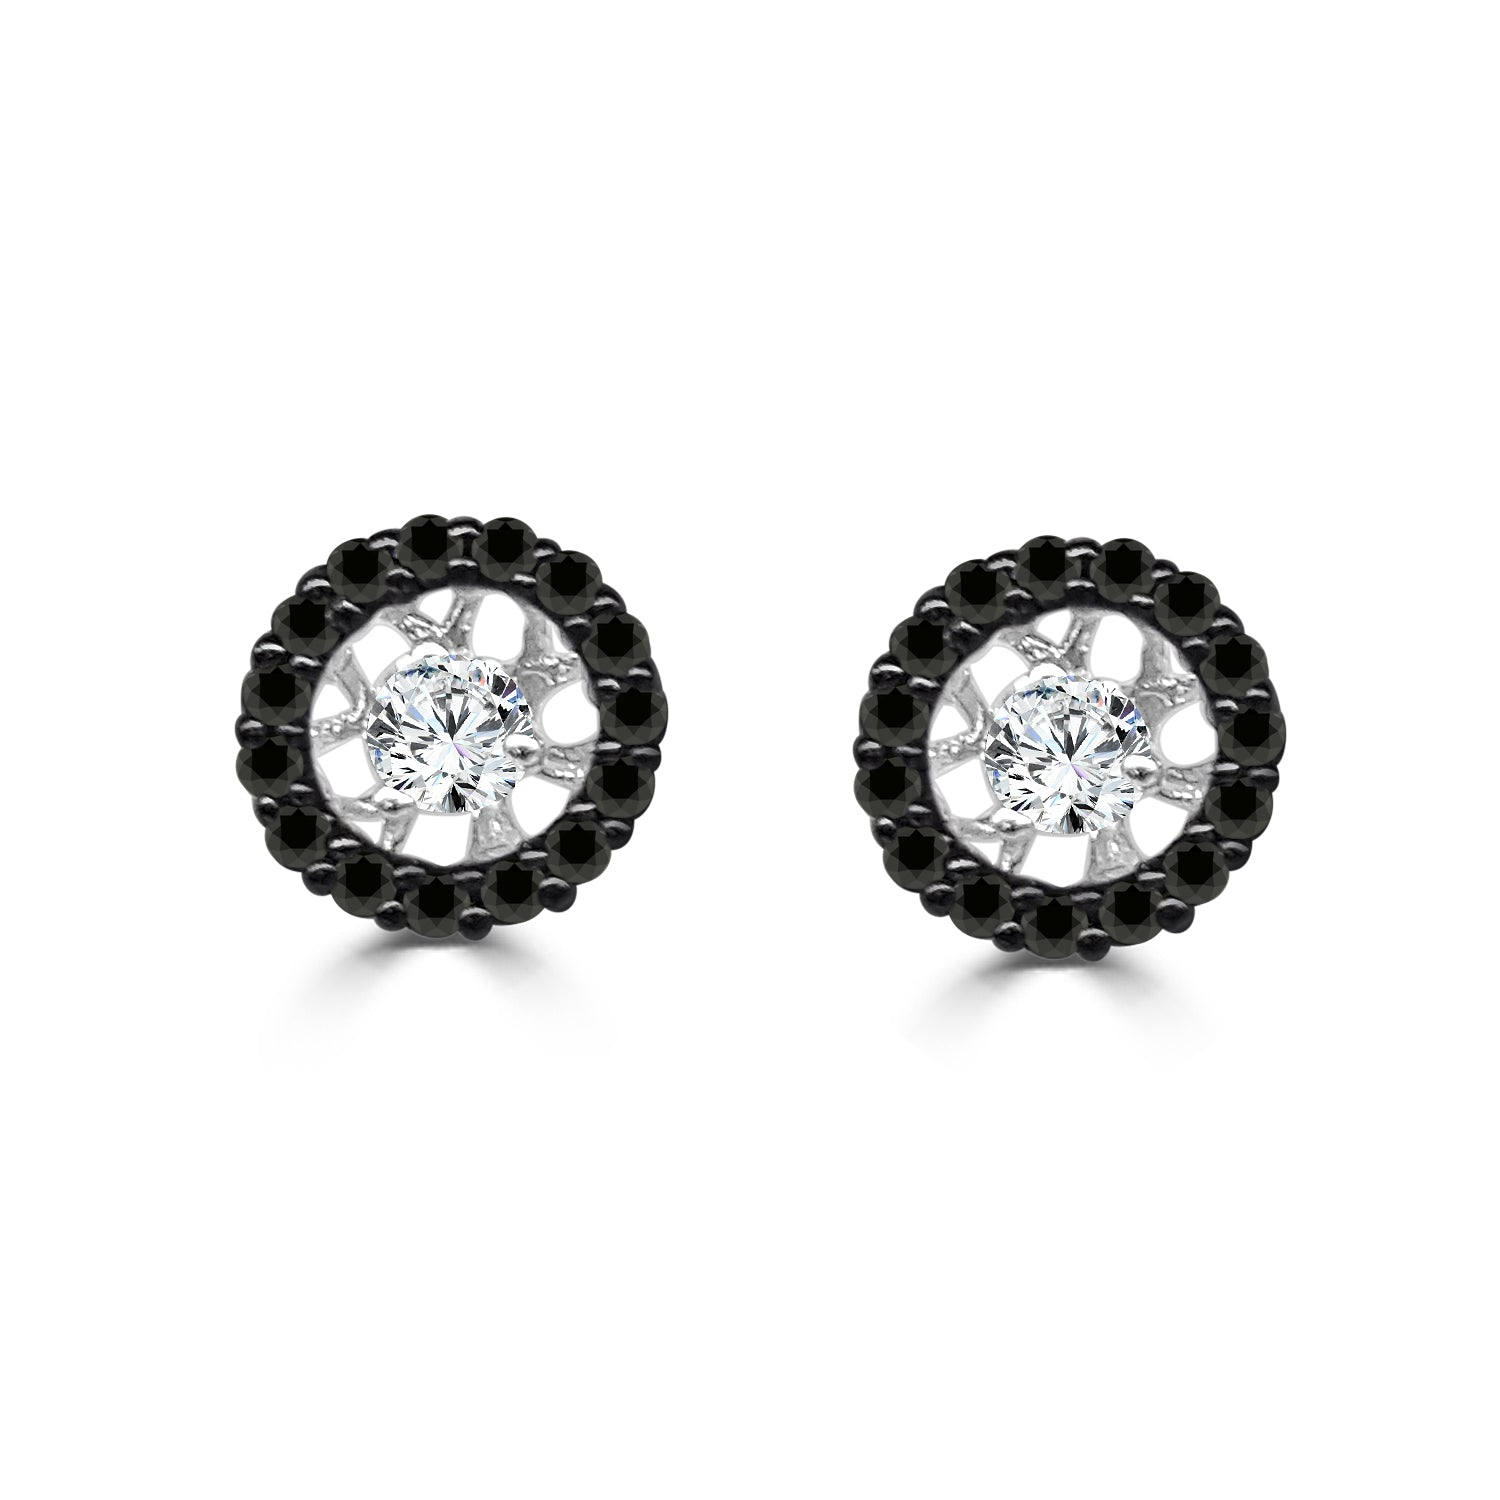 Black Diamond Earring Jackets